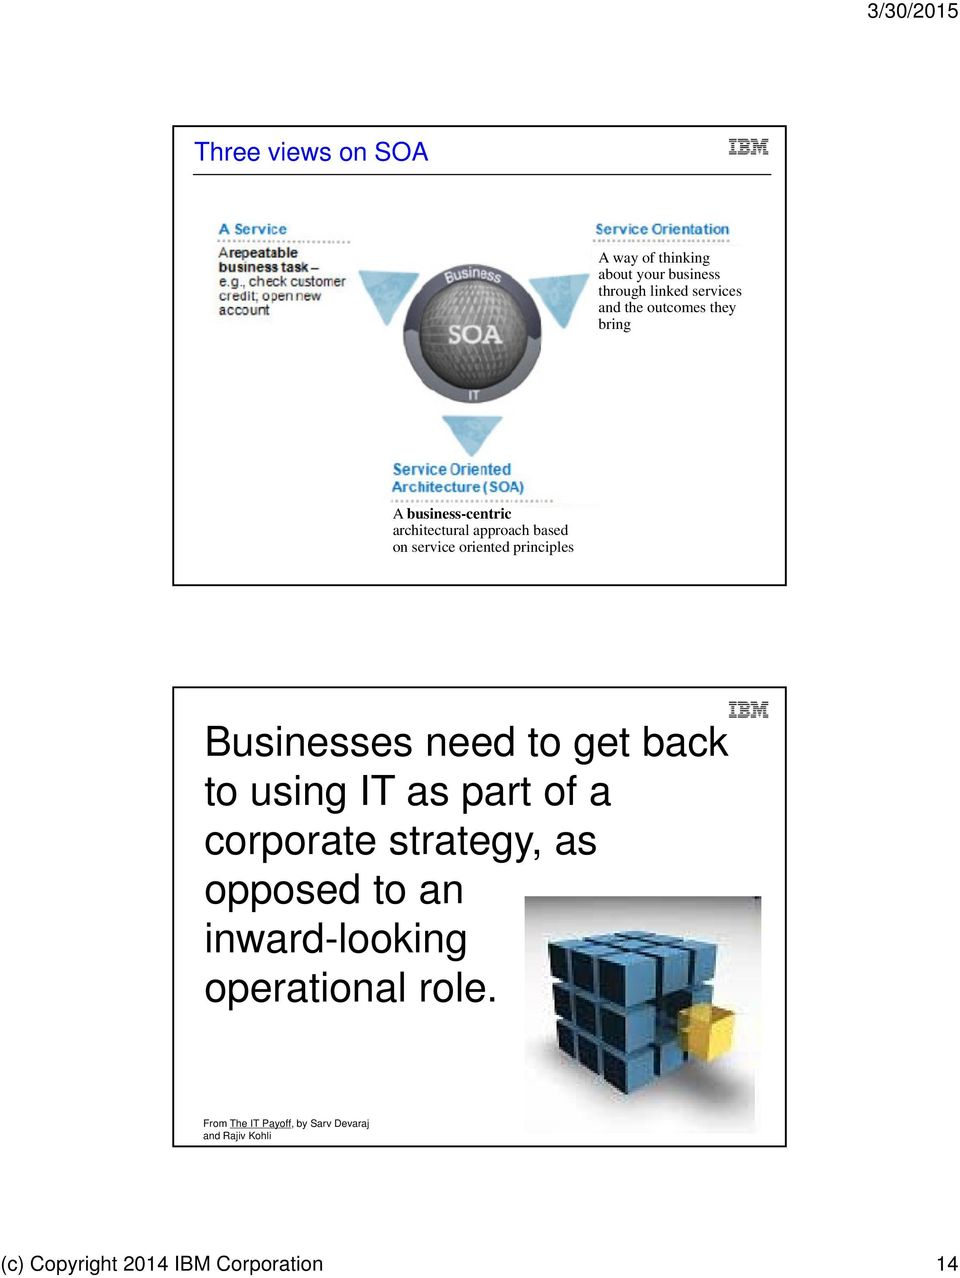 Businesses need to get back to using IT as part of a corporate strategy, as opposed to an